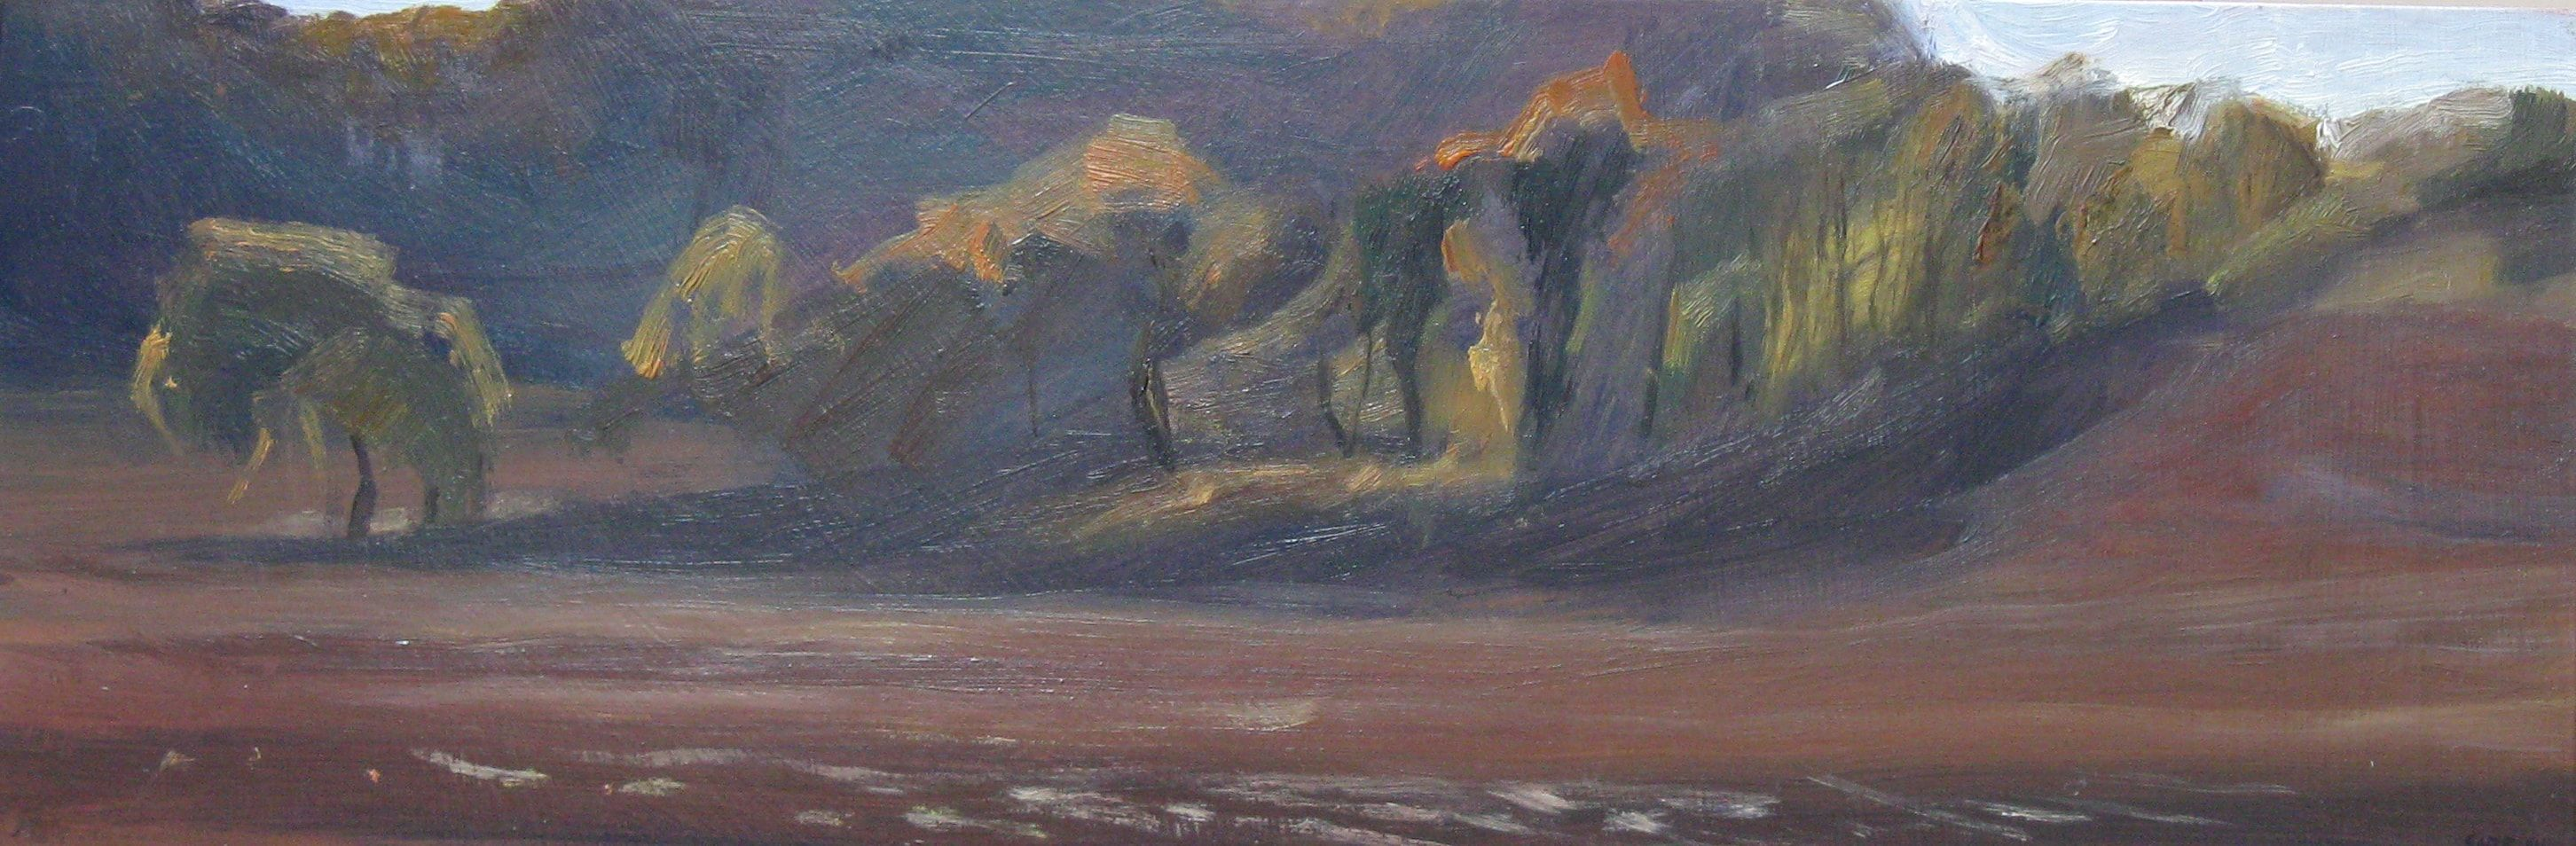 Contemporary painting - Valérie de Sarrieu - The Hedge on the 22nd of November 2017 at 3PM